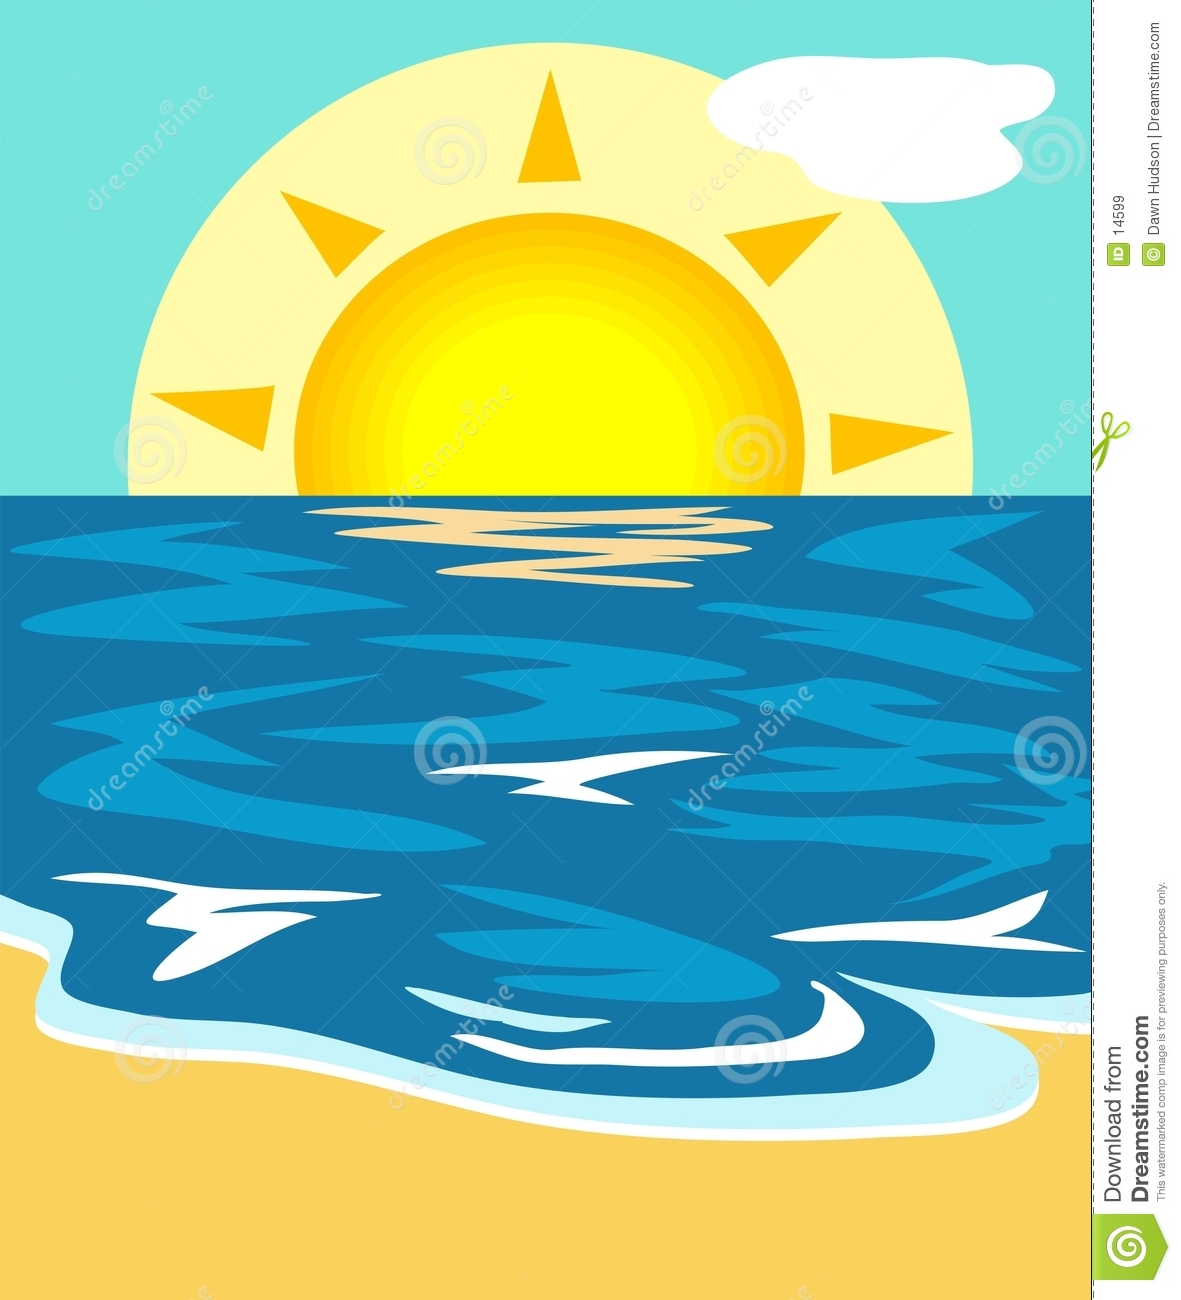 Seascape clipart Seascape Free Clipart Seascape Clipart